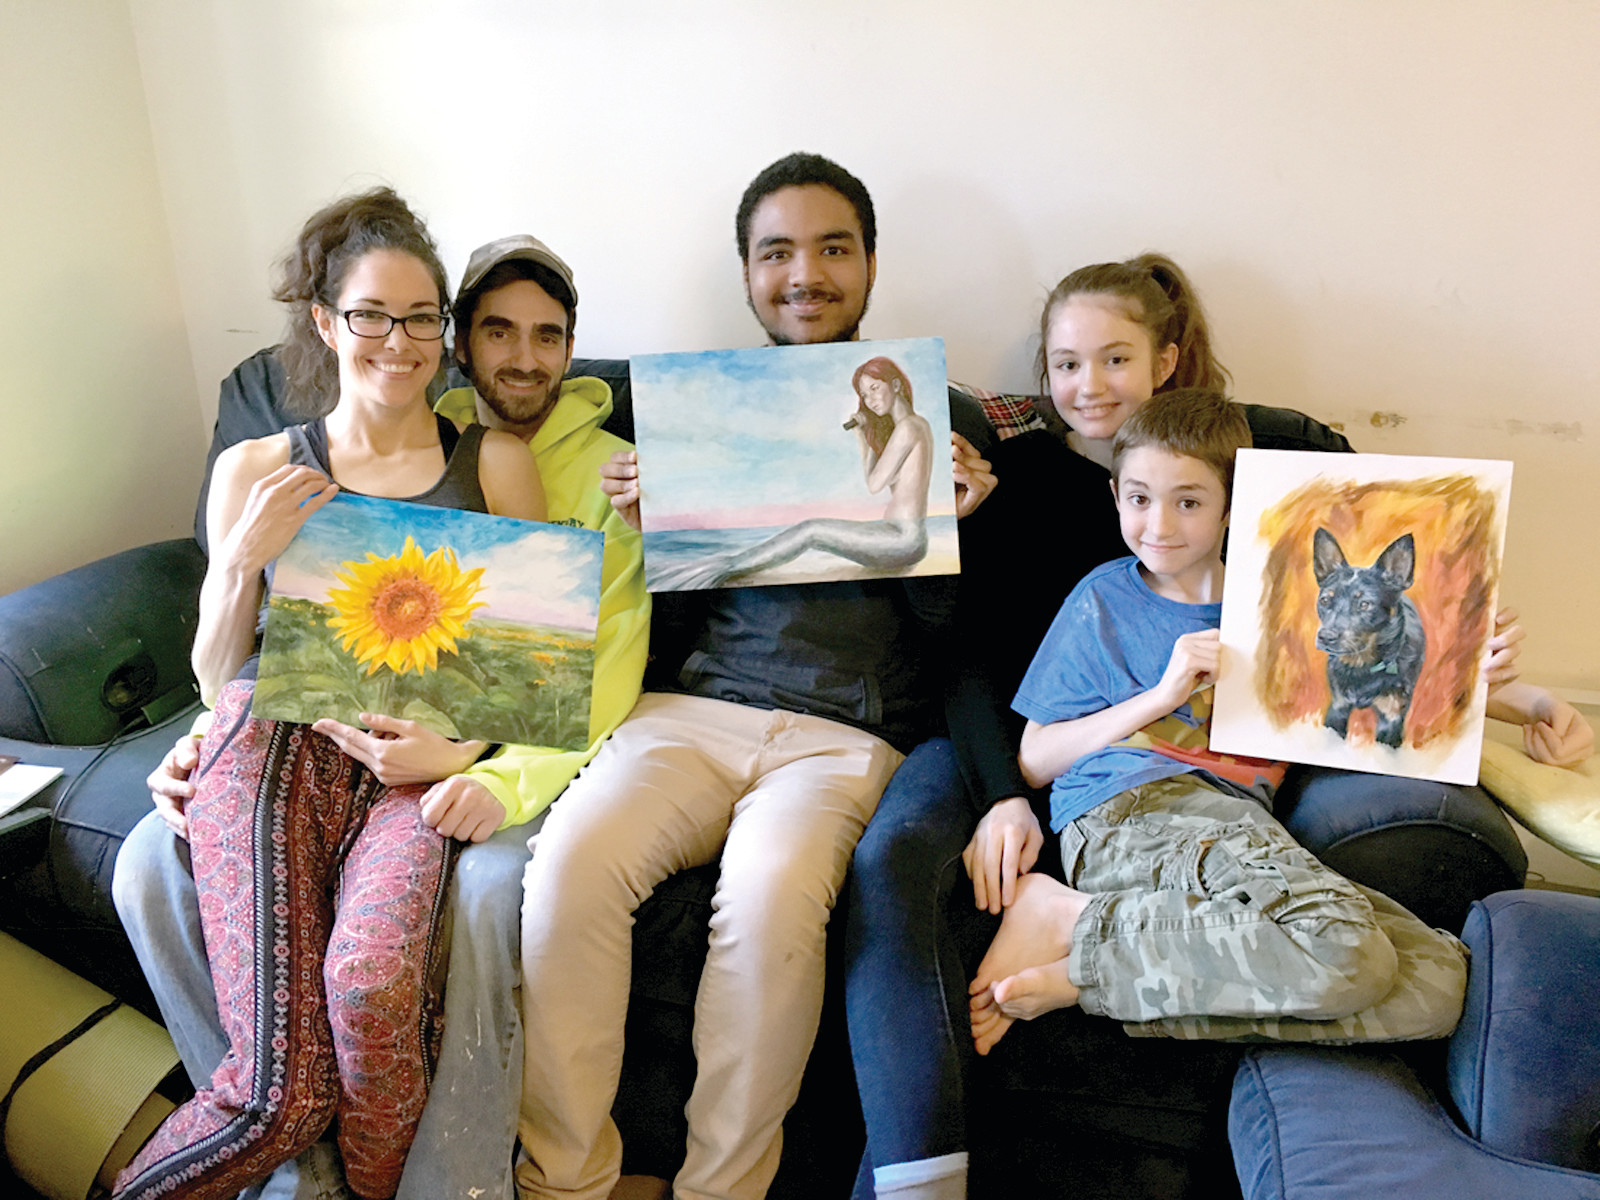 ART IN THE FAMILY: Artist Rhiannon Smith (far left) gets some help from fiancé Jason Musone and her children, Clayton, 20, Selene, 14, and Wesley, 10, in showing off a few pieces of her artwork.